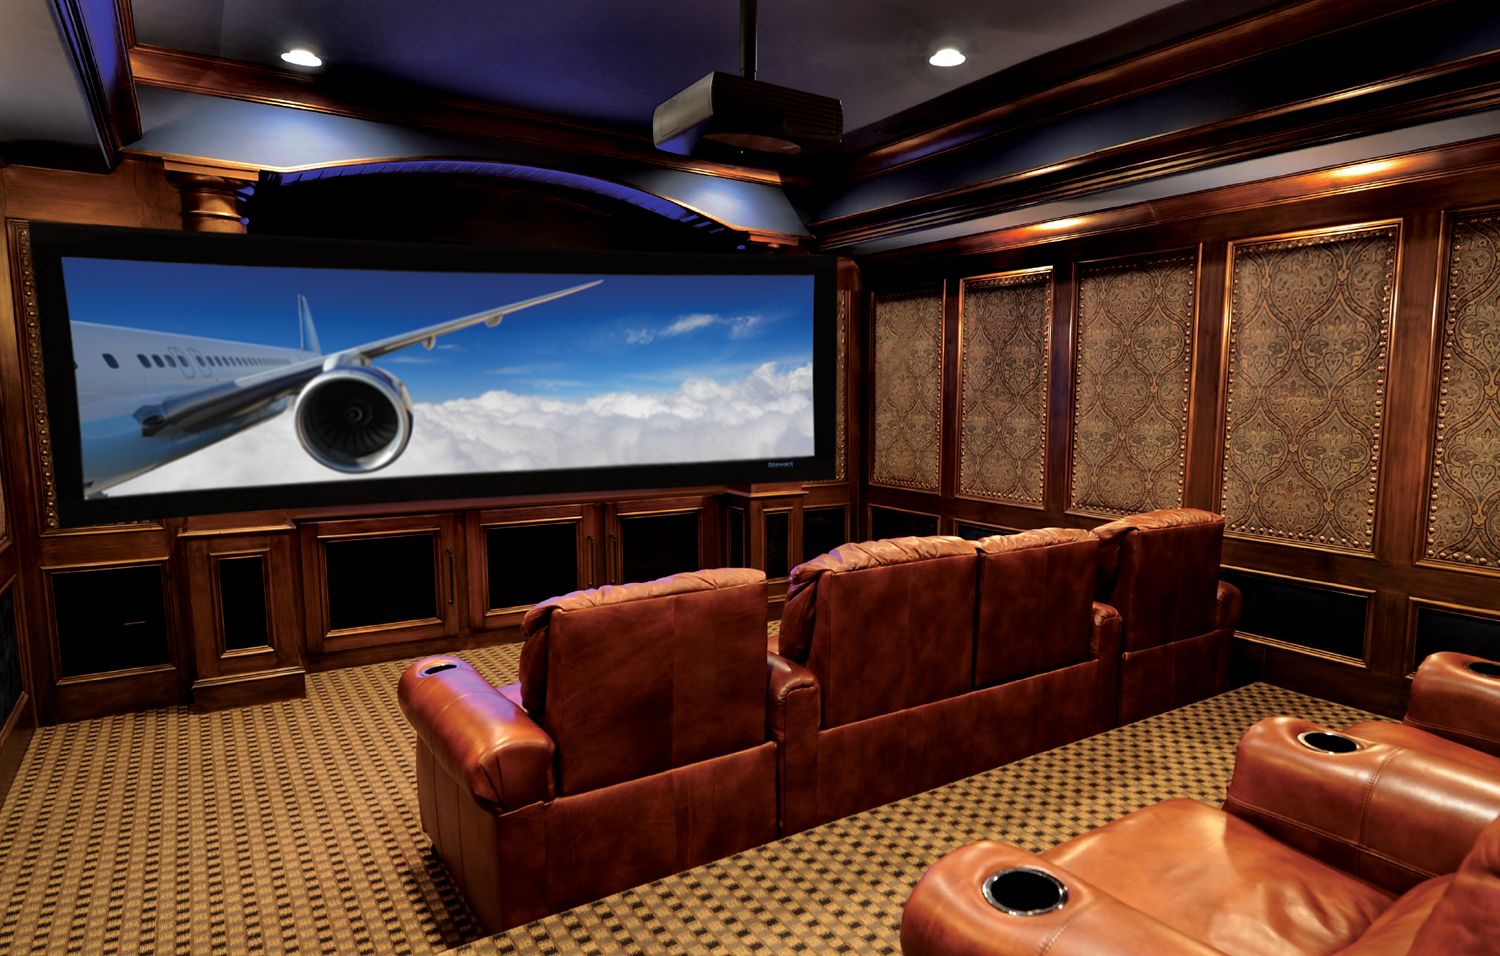 15 Awesome Basement Home Theater Cinema Room Ideas Theatre